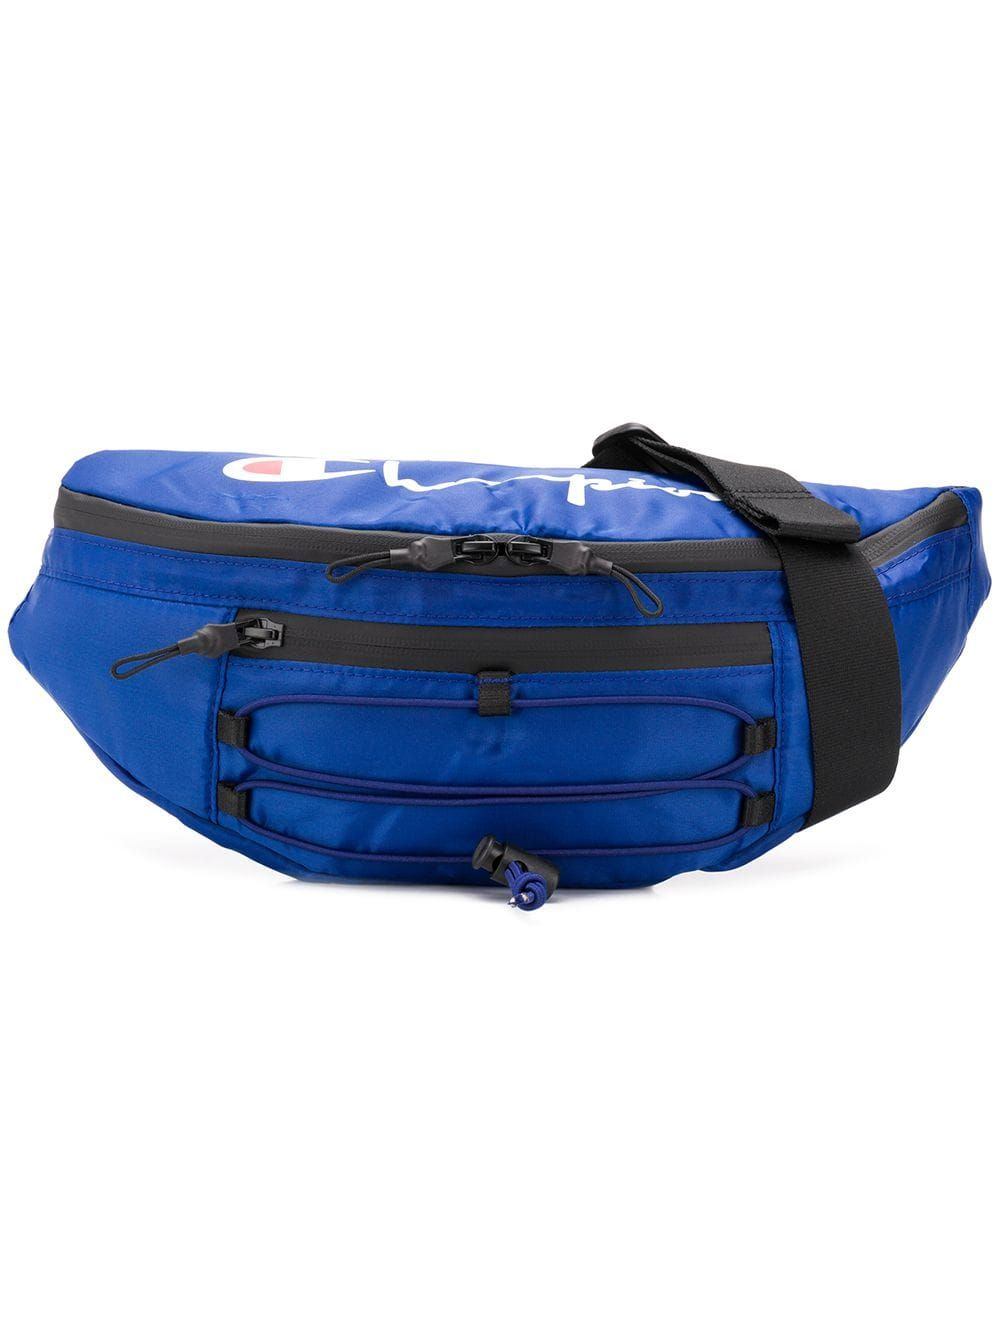 3a9655b57aff CHAMPION CHAMPION LOGO BELT BAG - BLUE.  champion  bags  belt bags ...